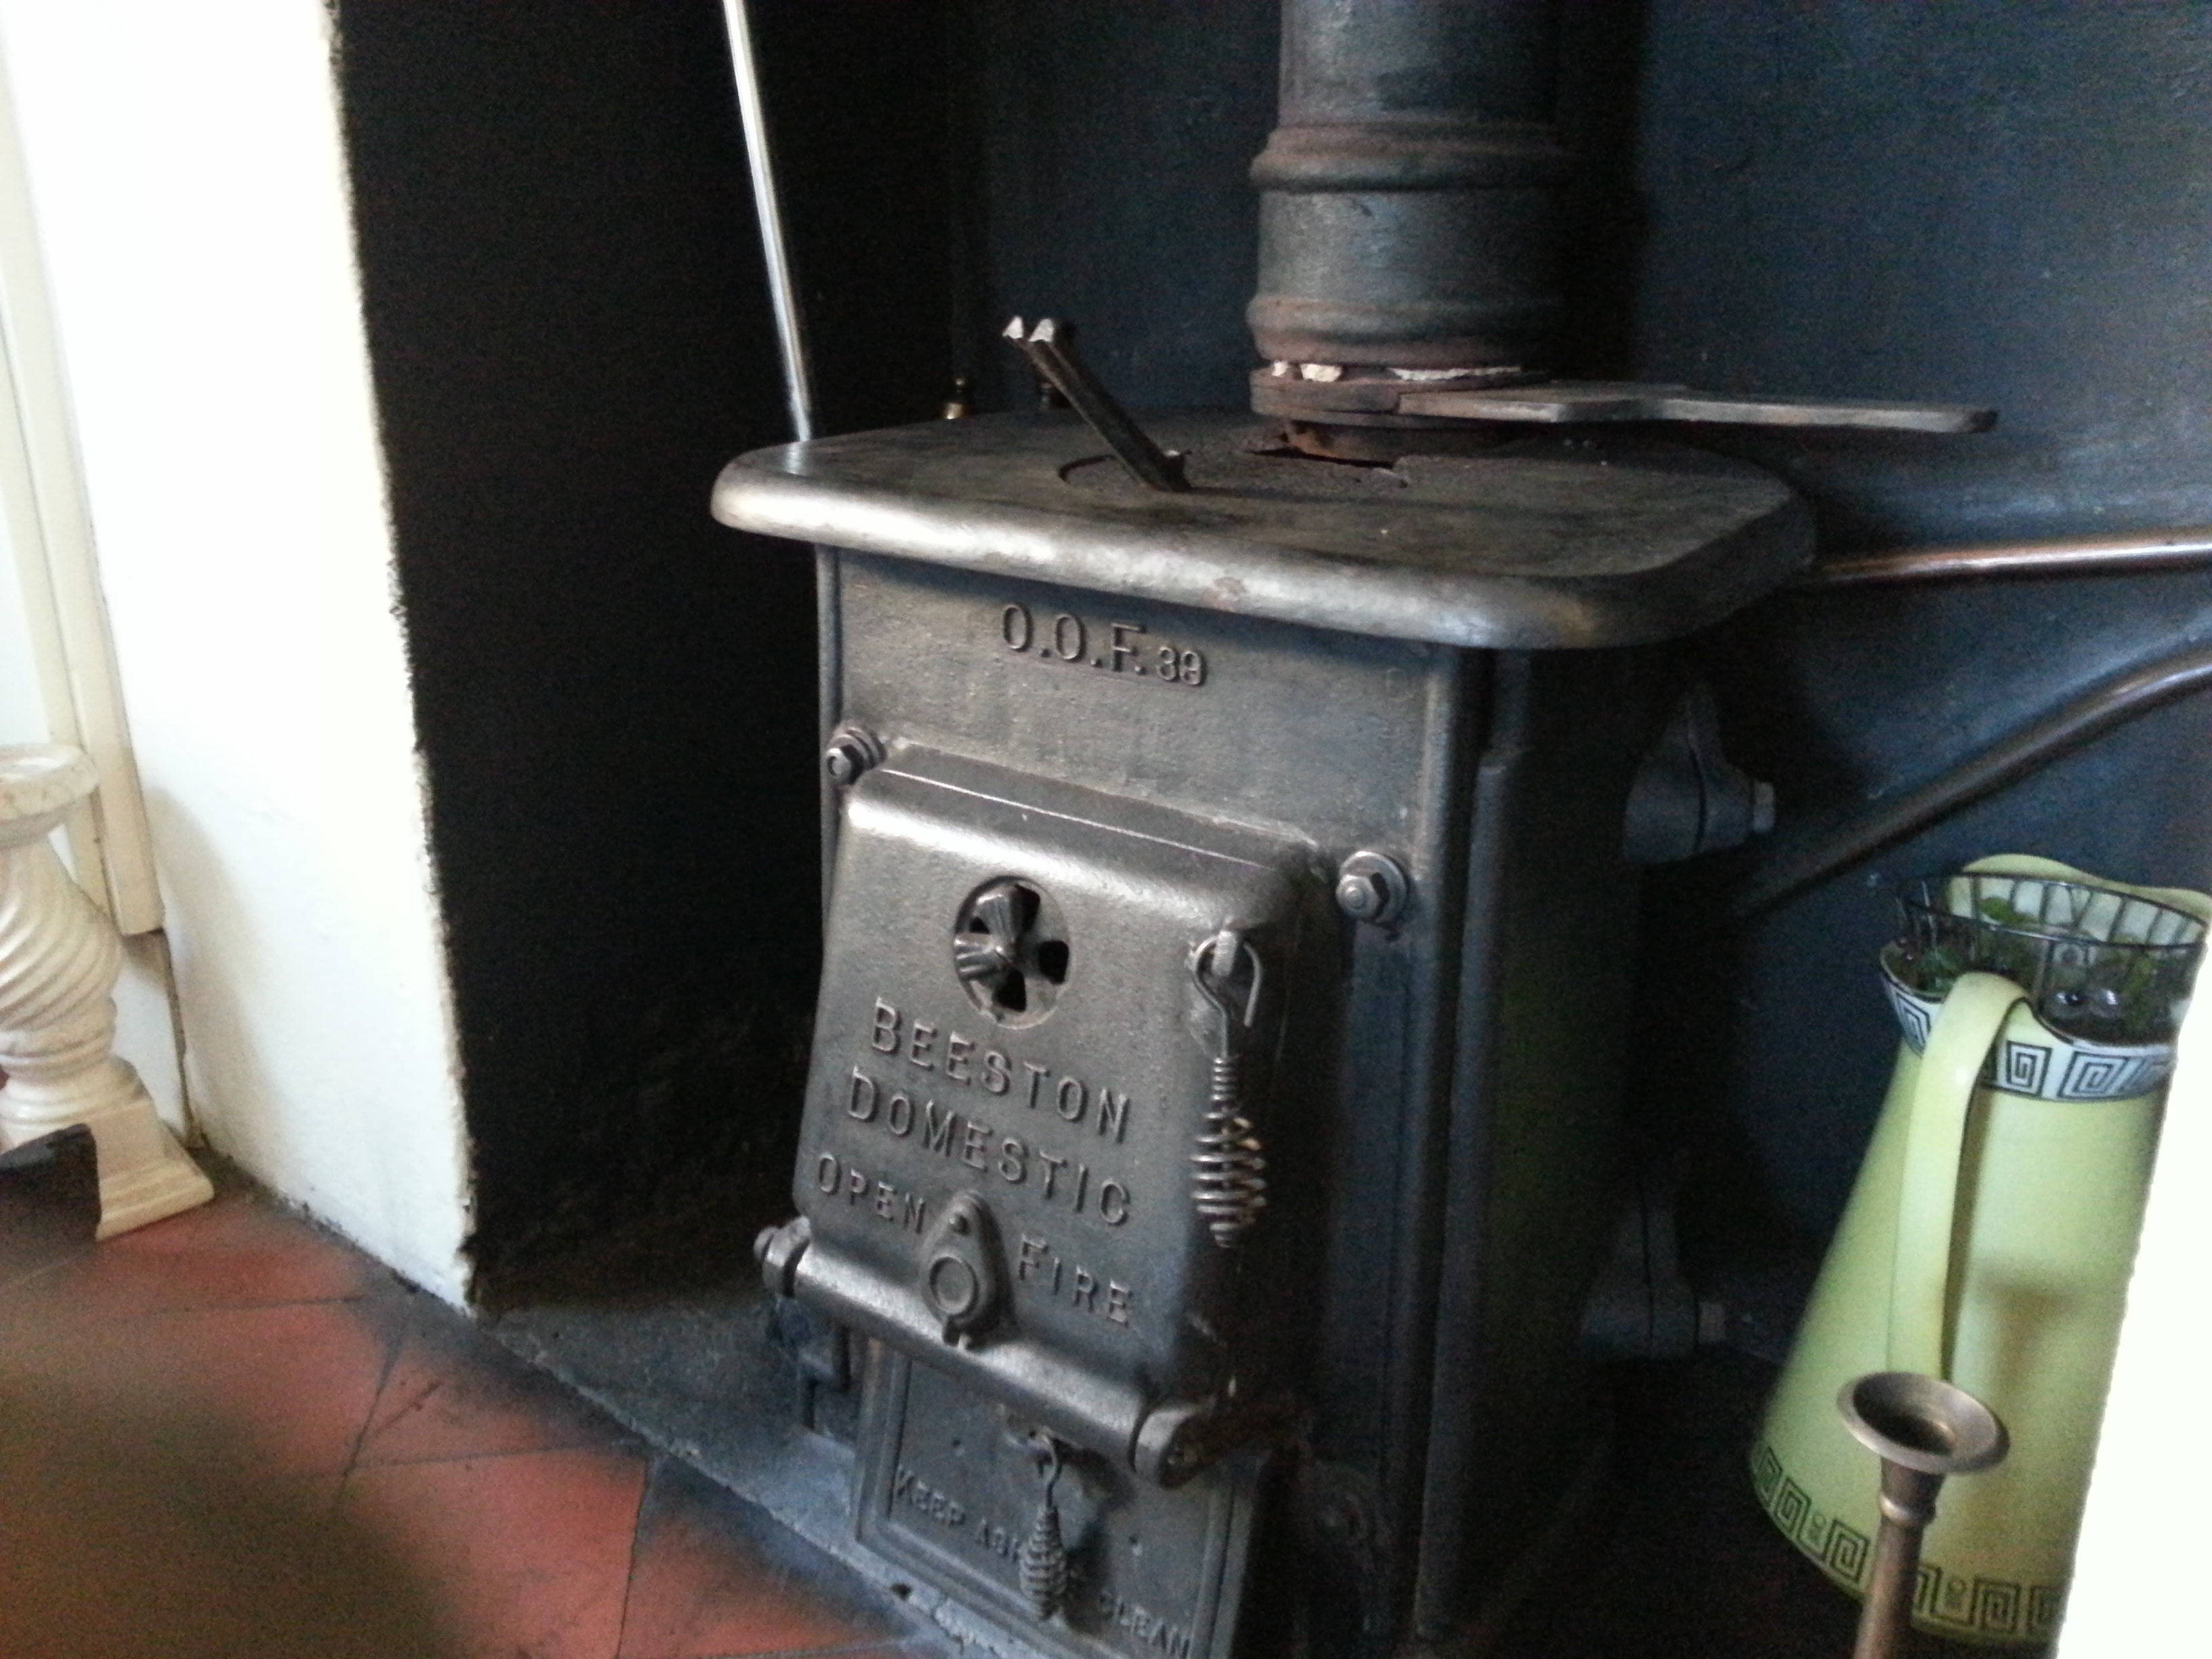 BEESTON Stove image